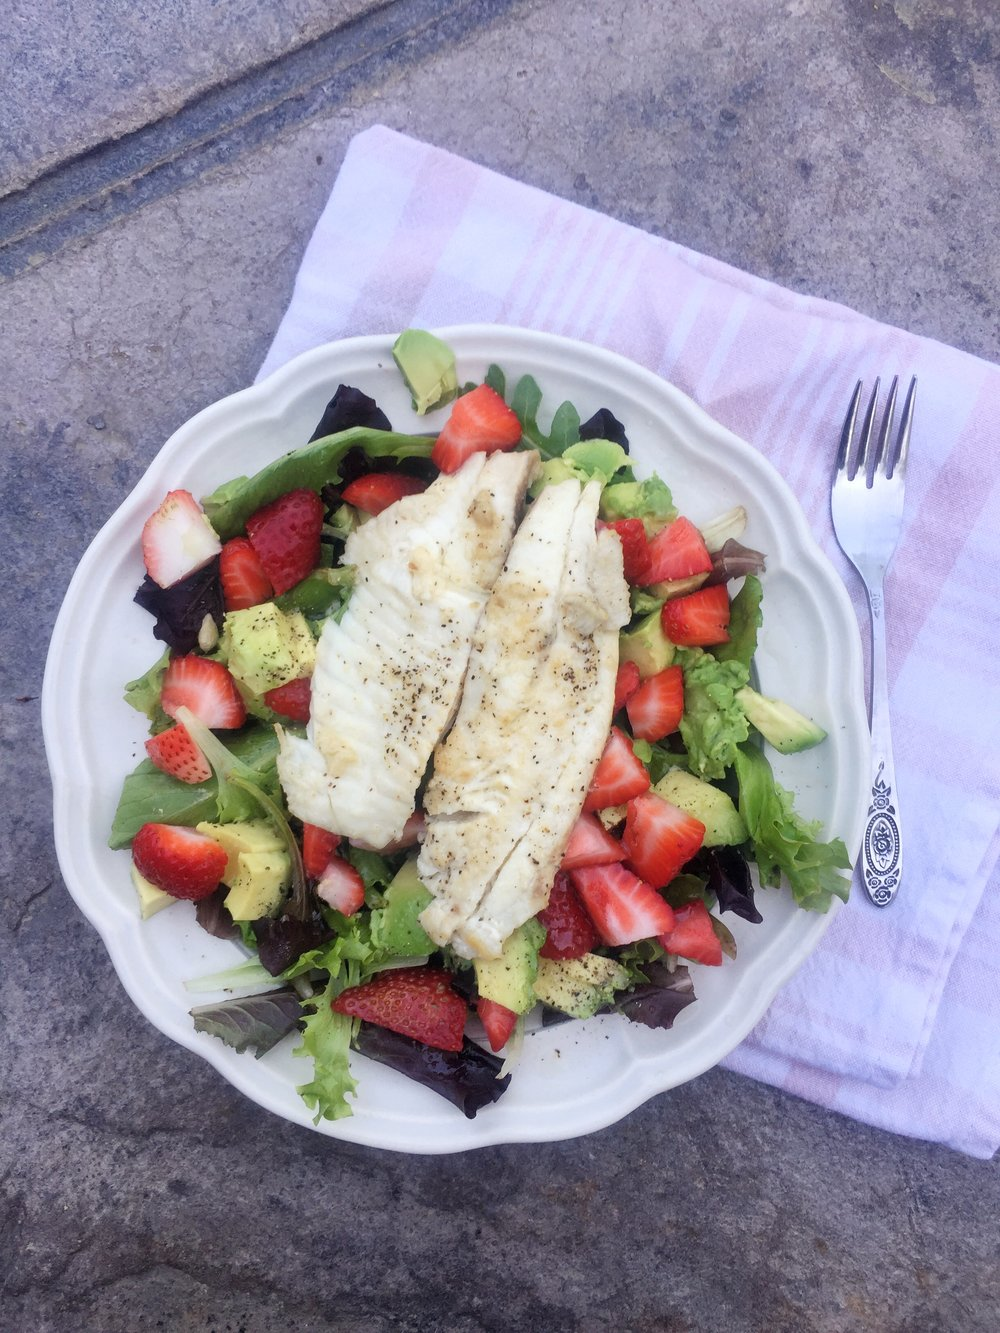 Salad with Avocado, Strawberries, and Tilapia